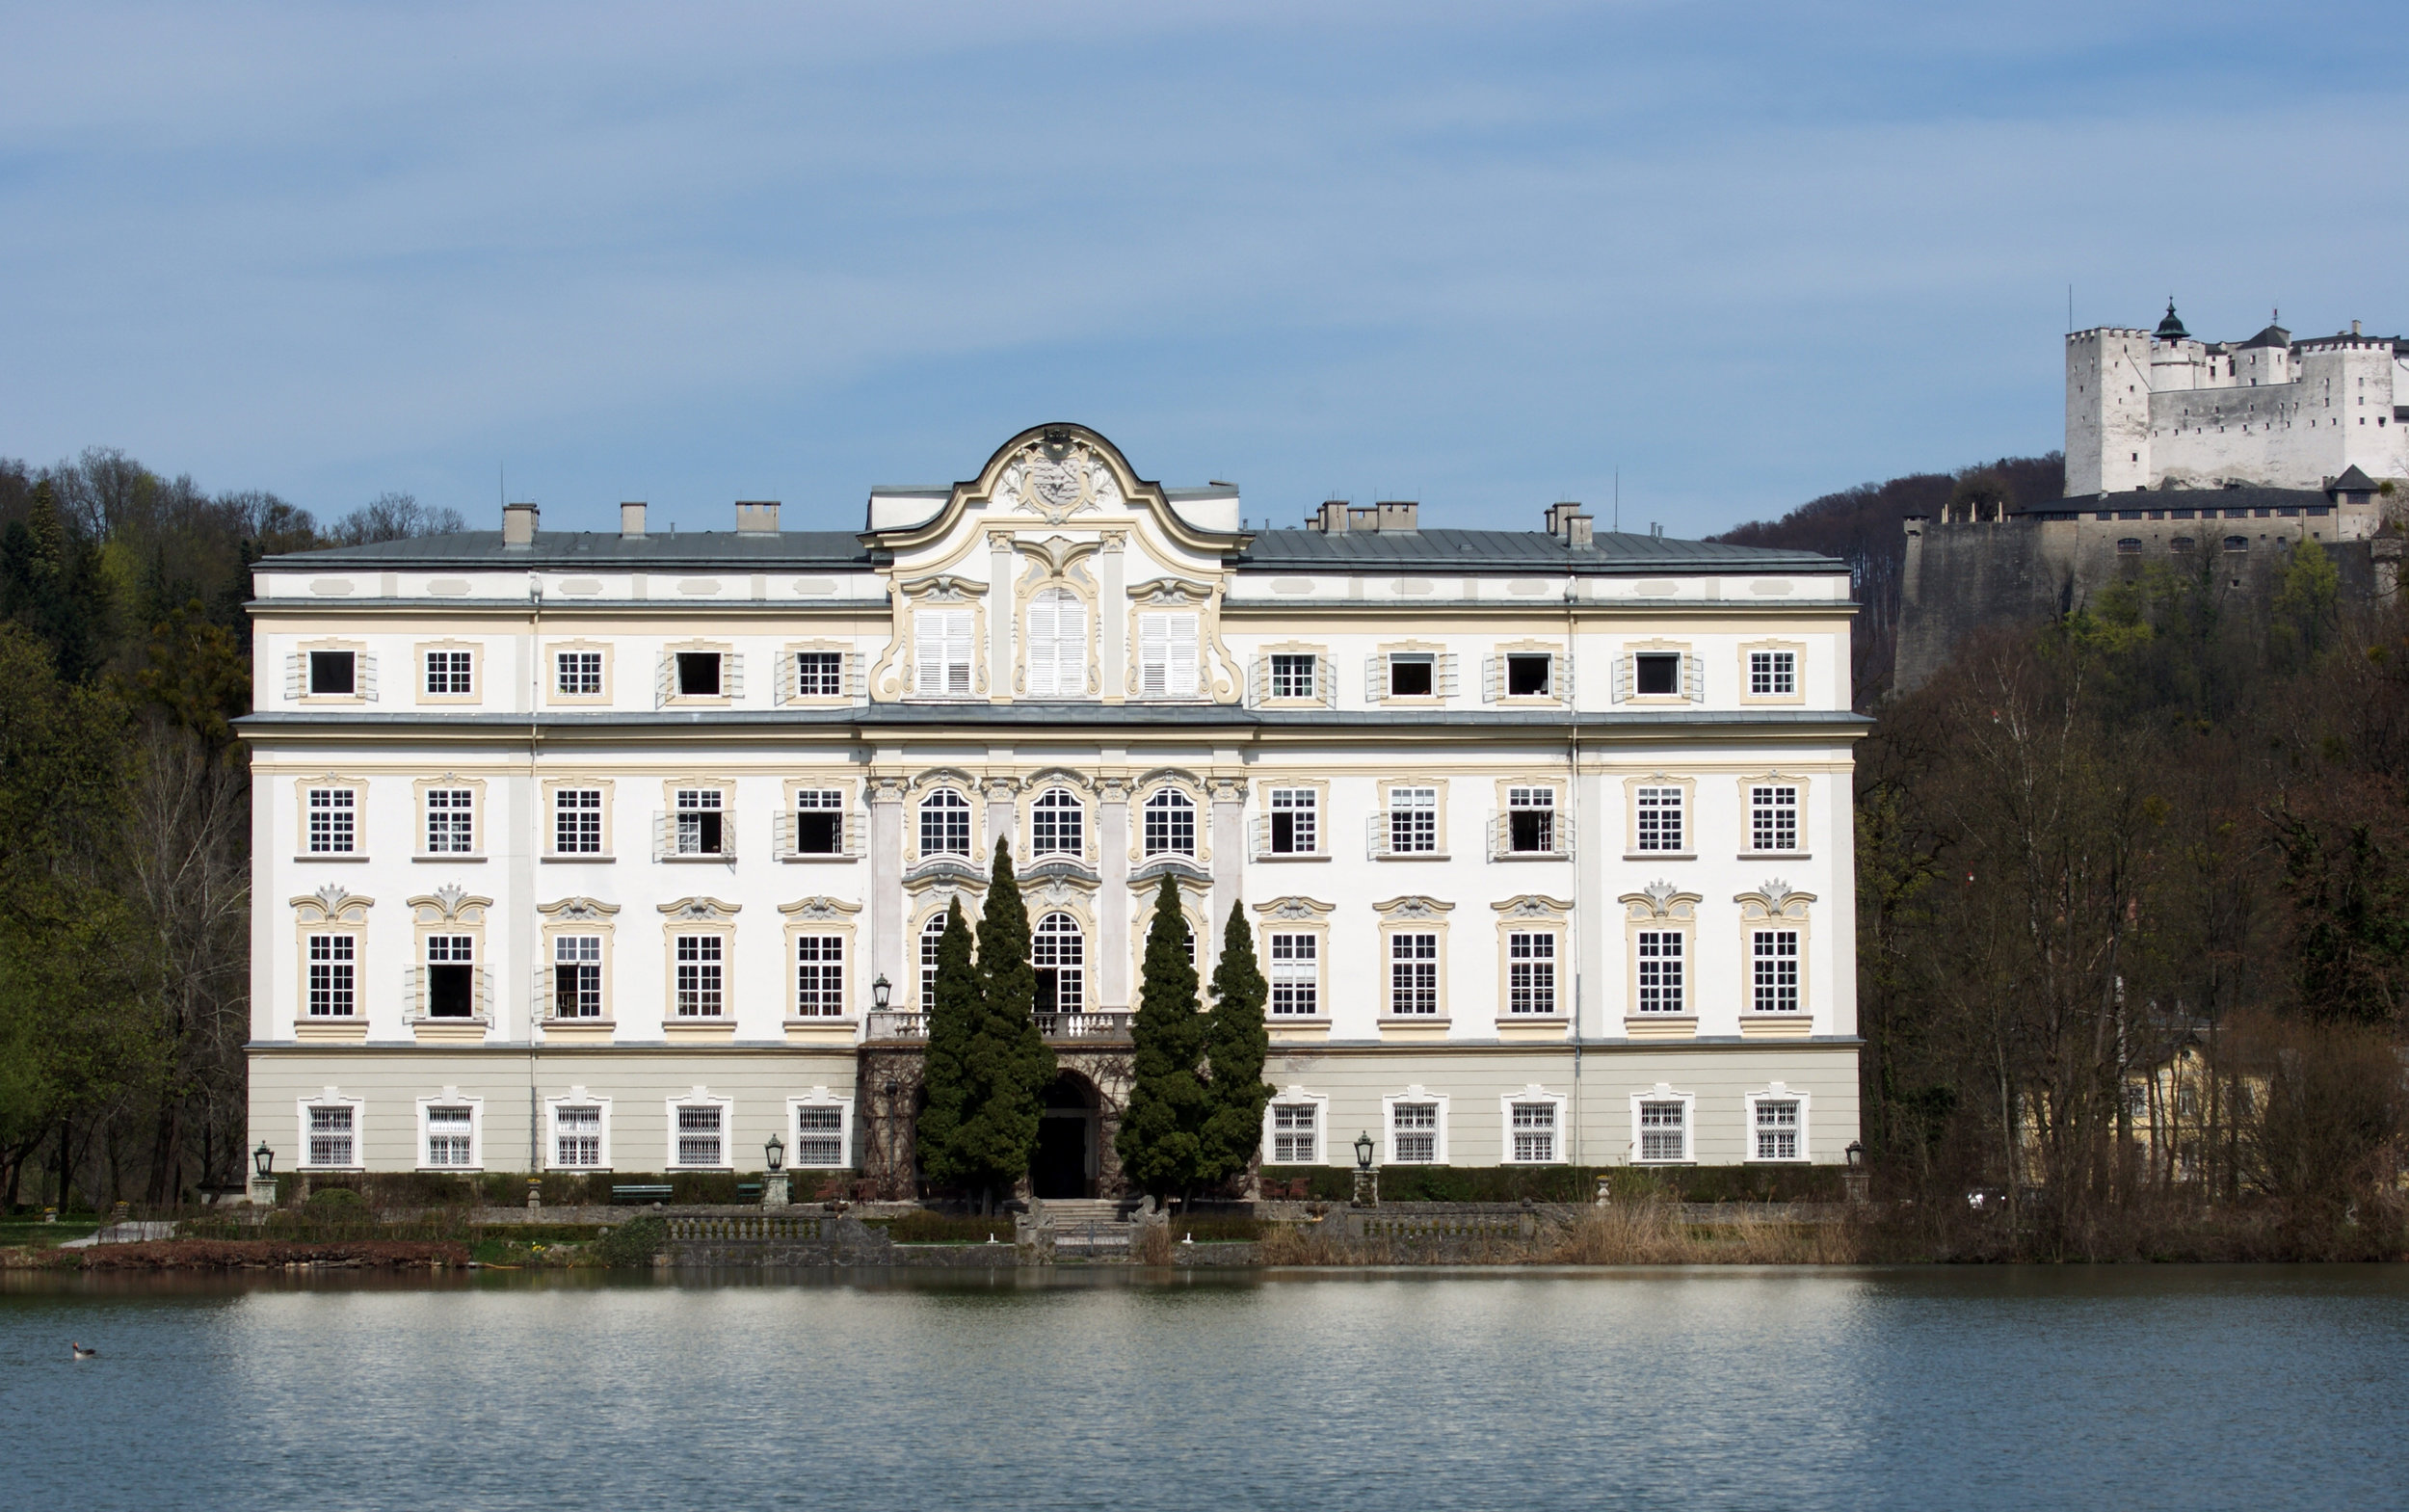 Schloss Leopoldskorn shot by  Simon Bernd Krazner  on  Wikimedia